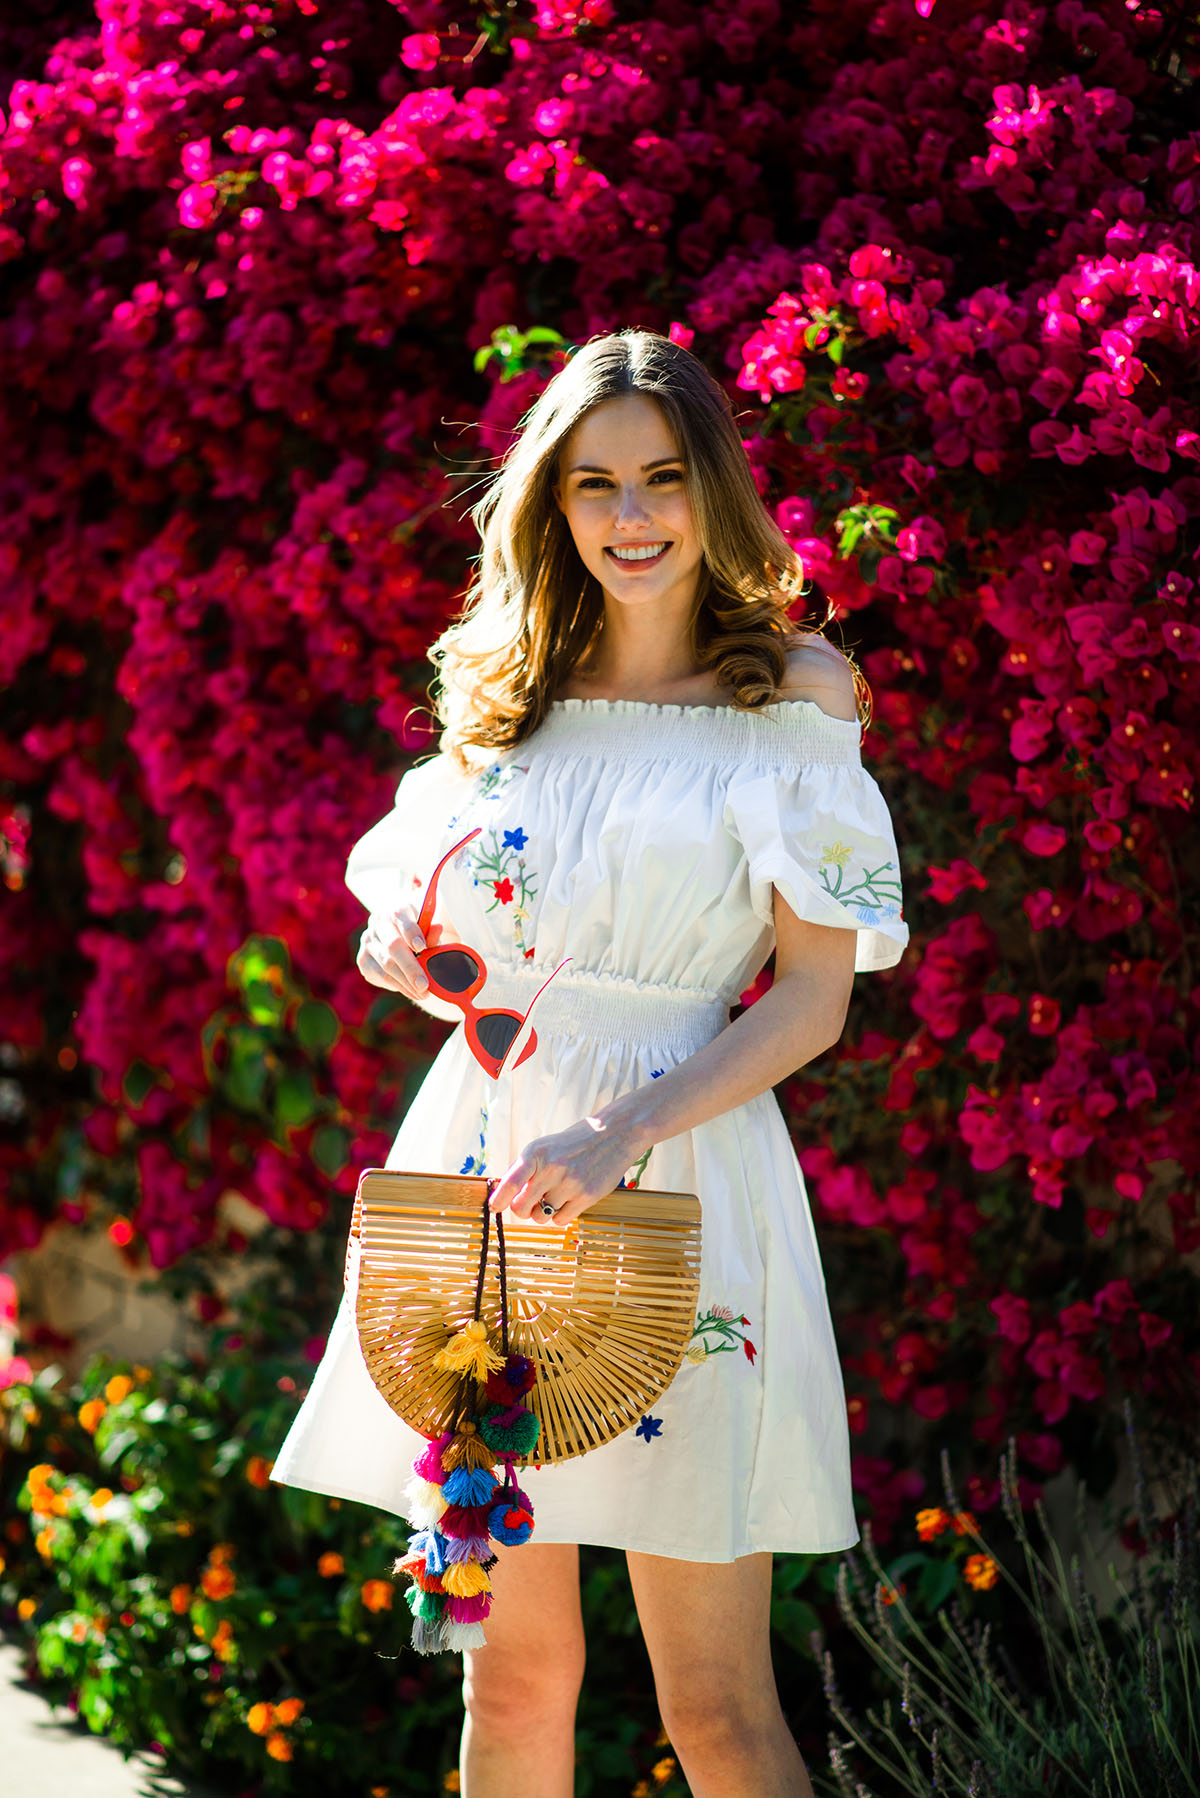 Alyssa-Campanella-of-The-A-List-blog-showcasing-colorful-spring-style-in-Storets